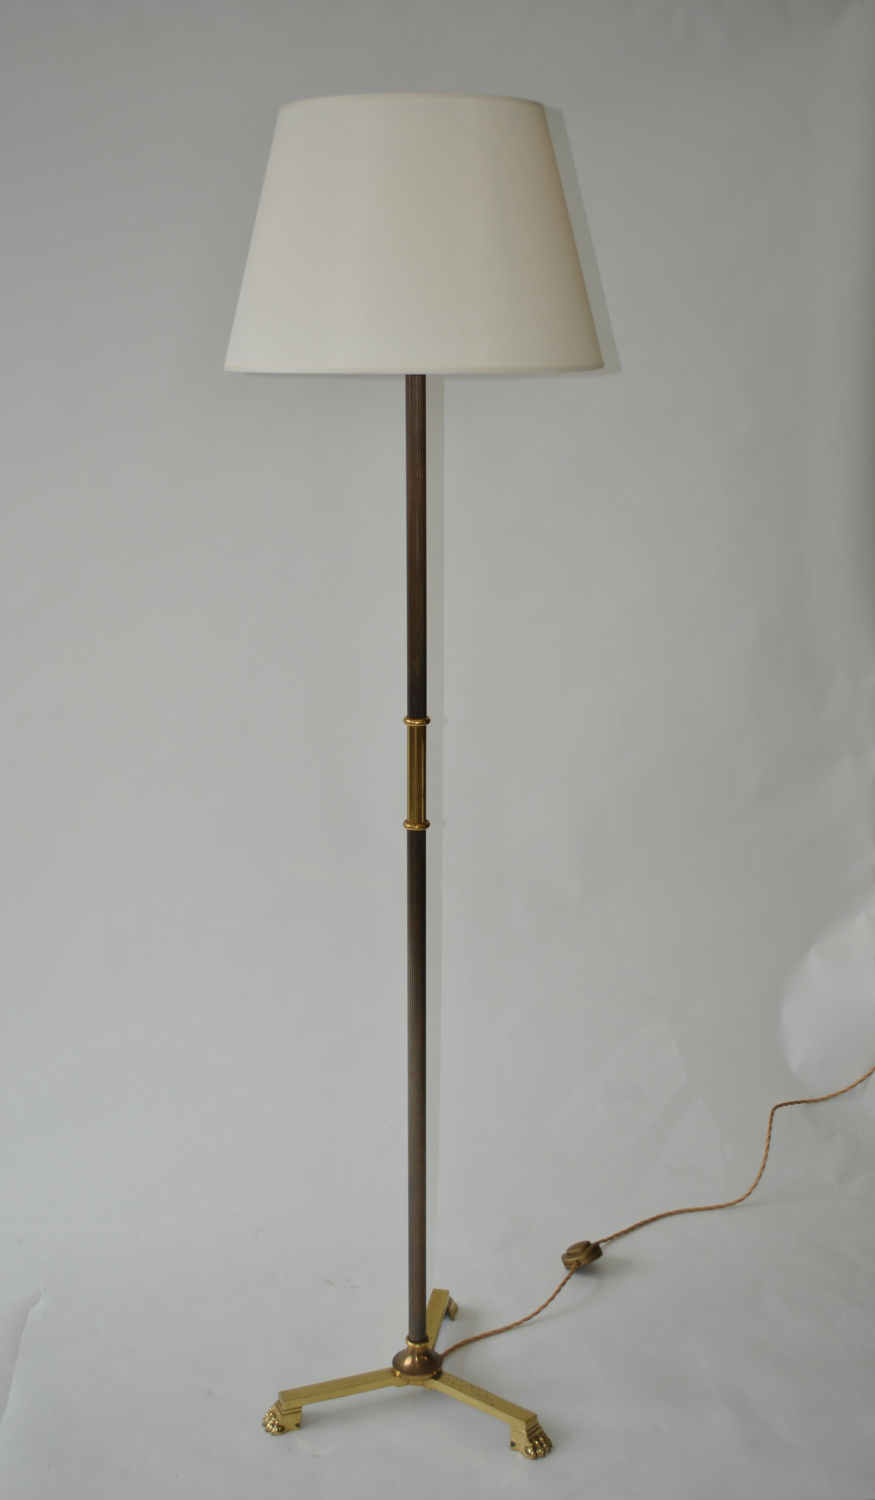 Floor Lamp by Arbus